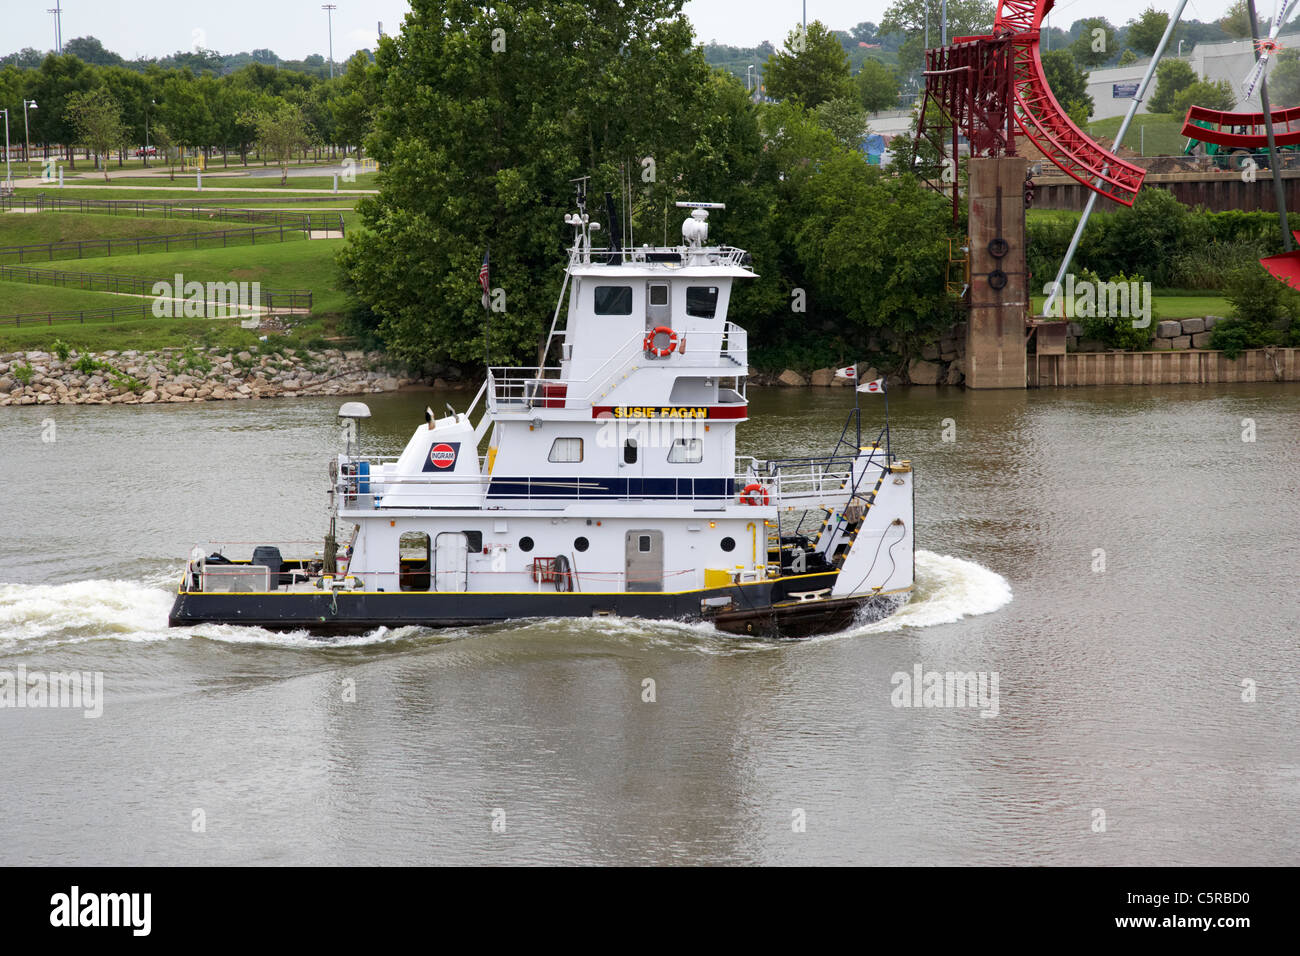 Susie Fagan towboat on the cumberland river Nashville Tennessee USA - Stock Image